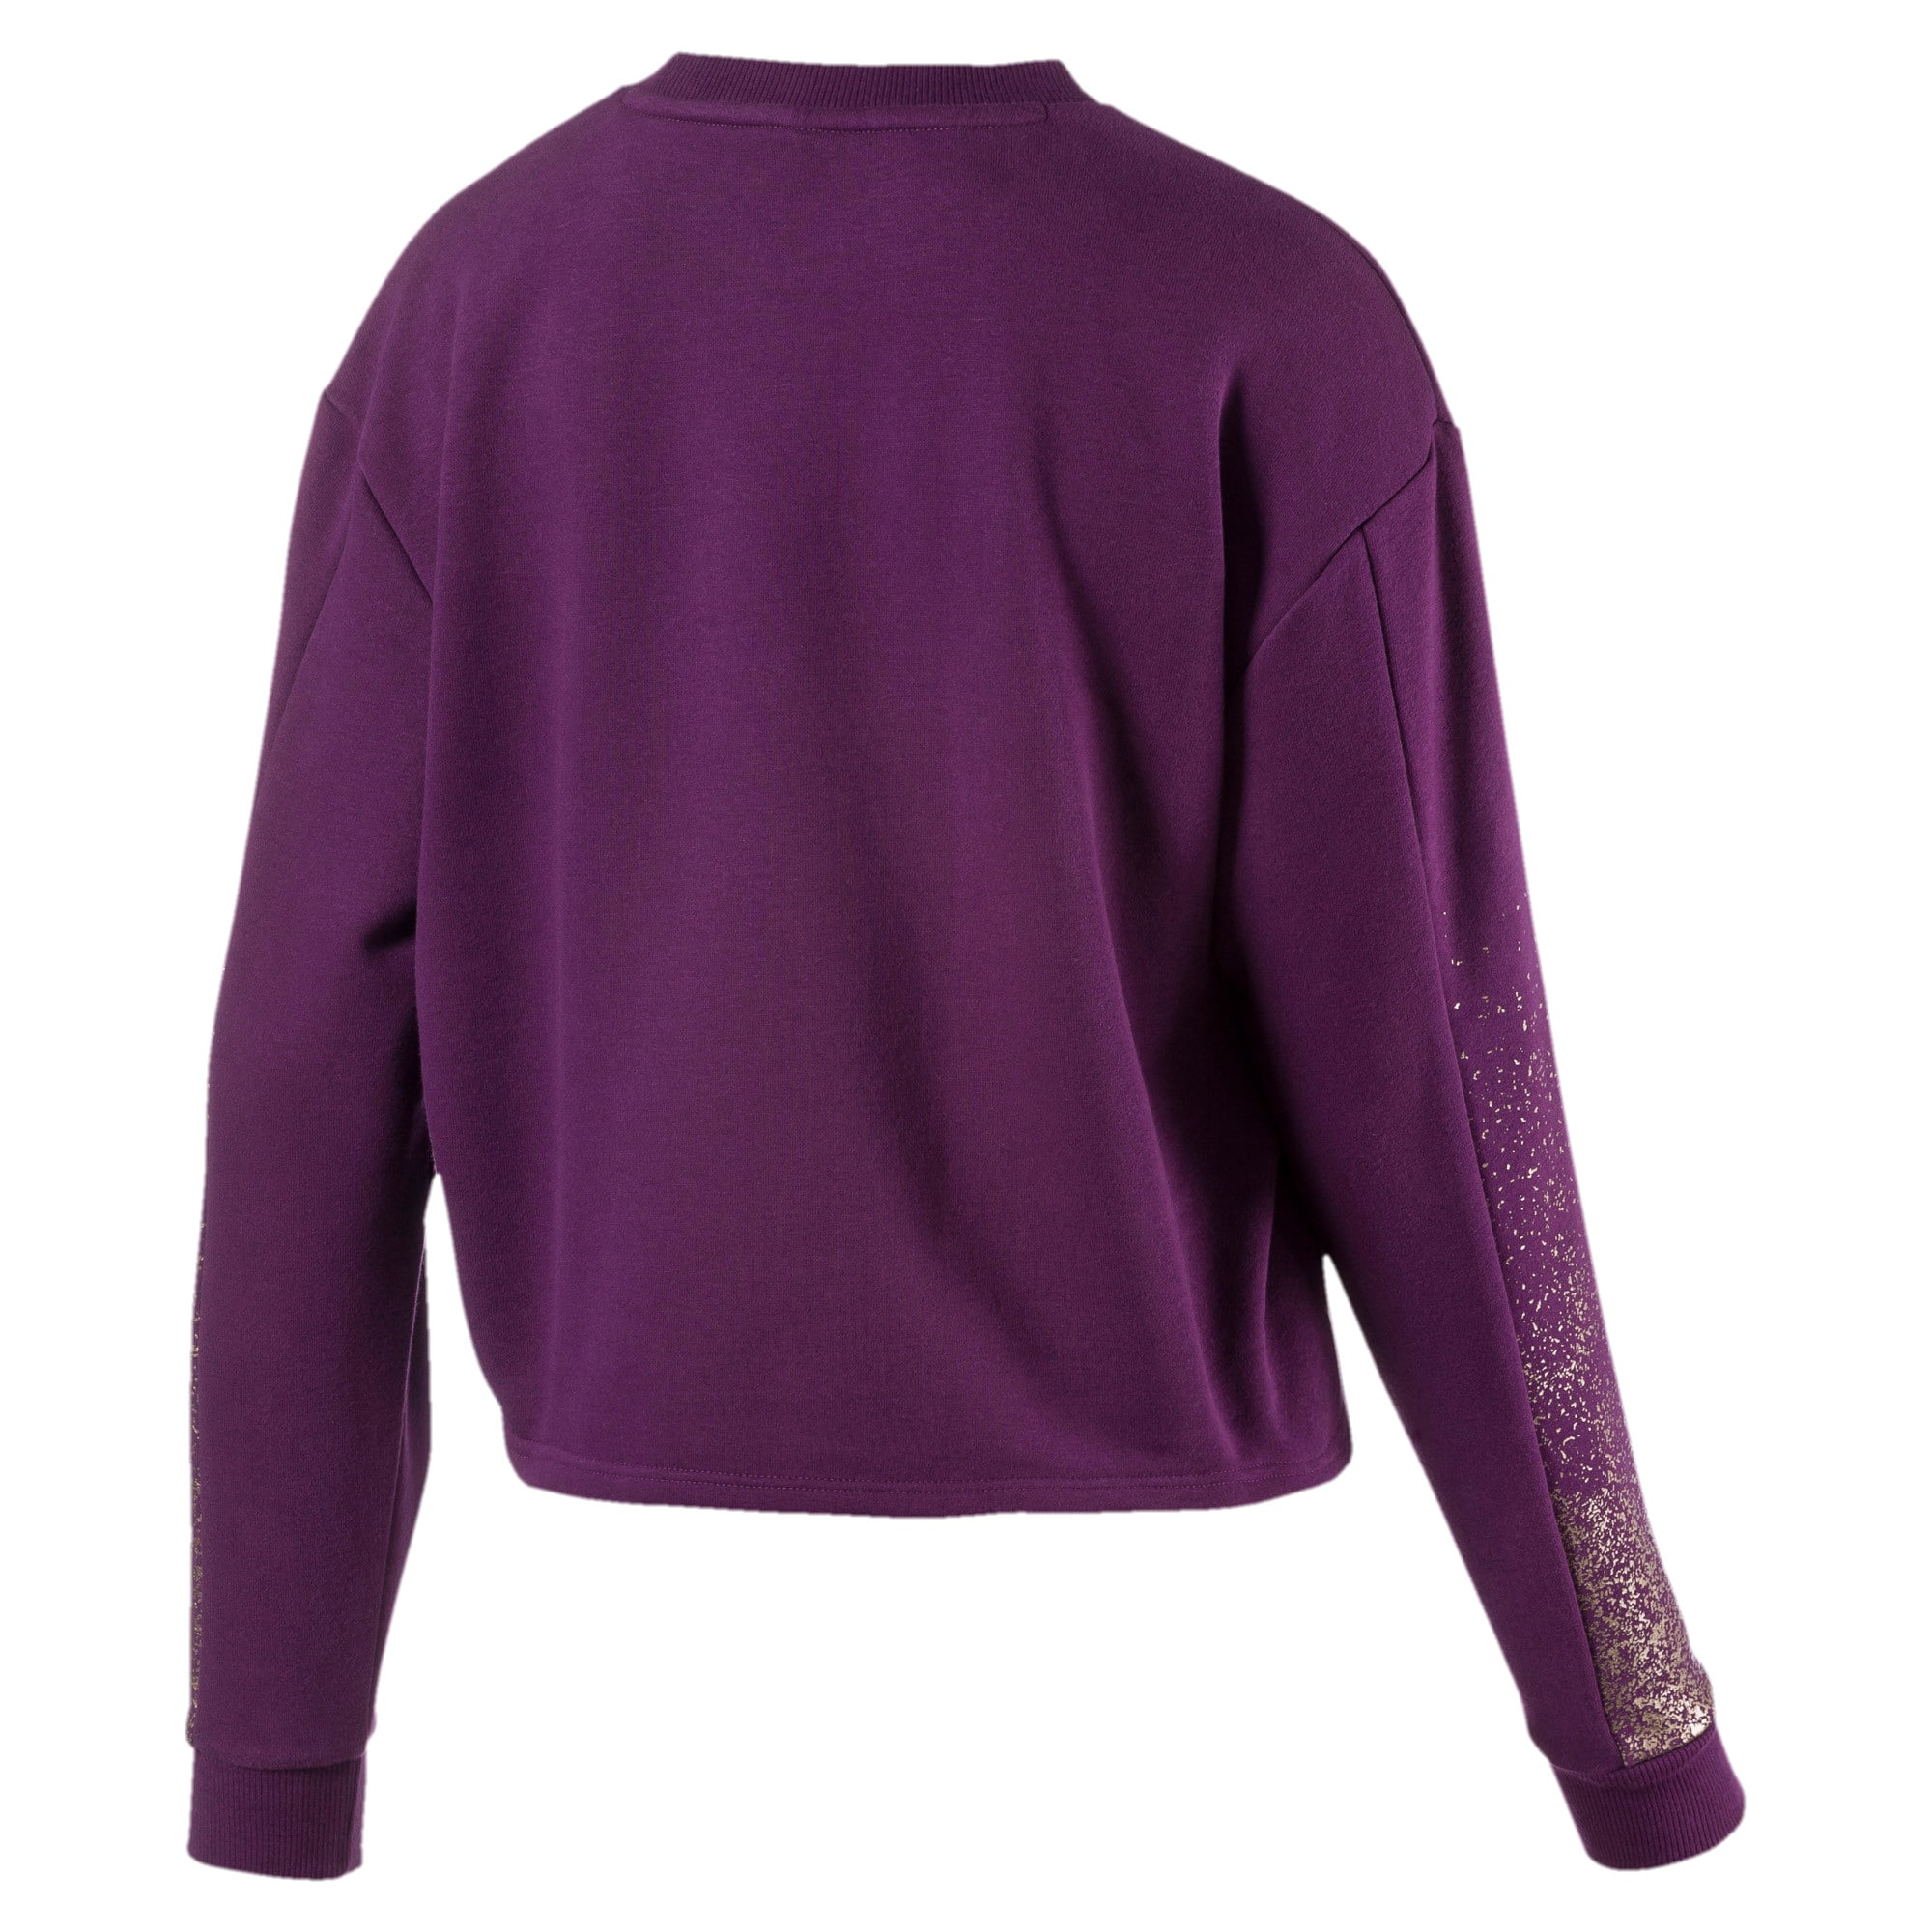 Thumbnail 2 of Holiday Pack Graphic Long Sleeve Women's Pullover, Plum Purple, medium-IND